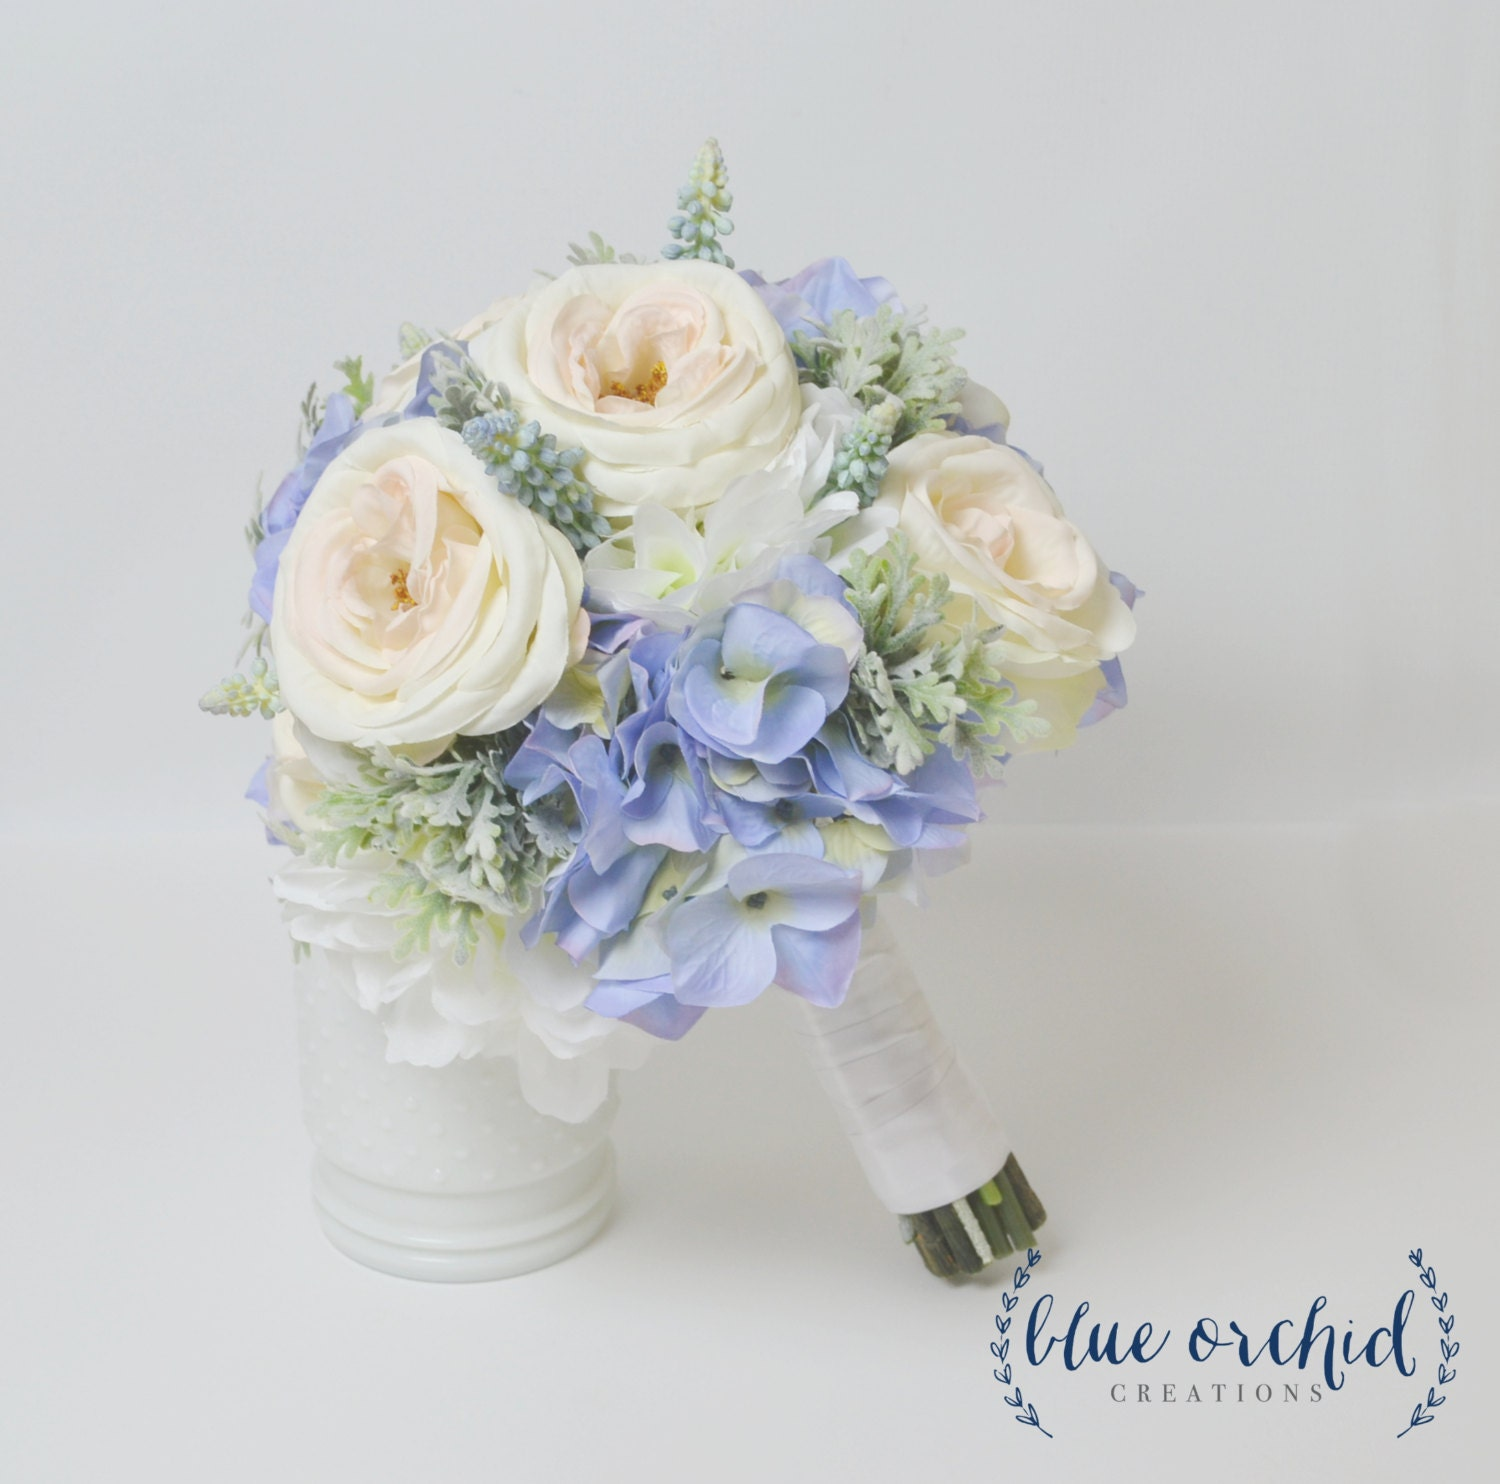 Blue Hydrangea Wedding Flowers: Blue Hydrangea Bouquet With Blush Garden Roses And Dusty